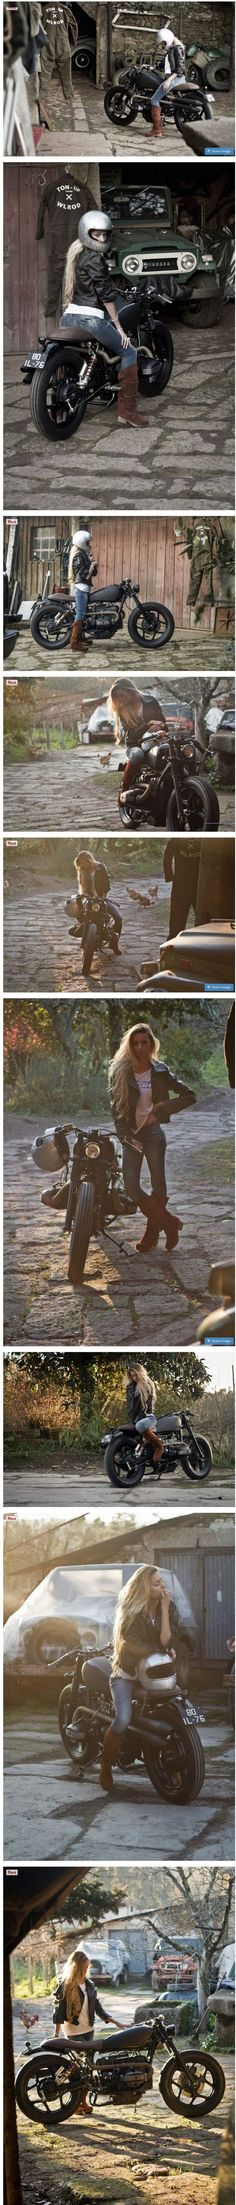 BMW R80 RT BY TON UP GARAGE Girls and Motorcycles